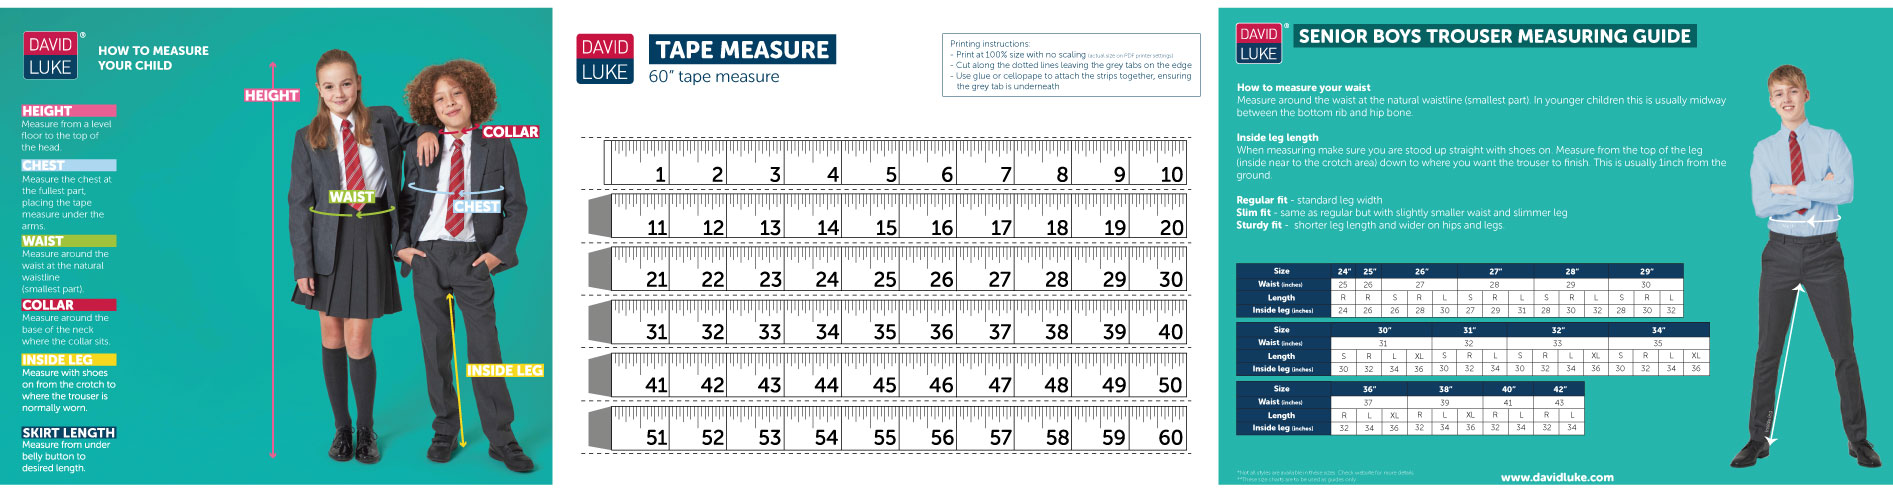 Images of measuring guide tools